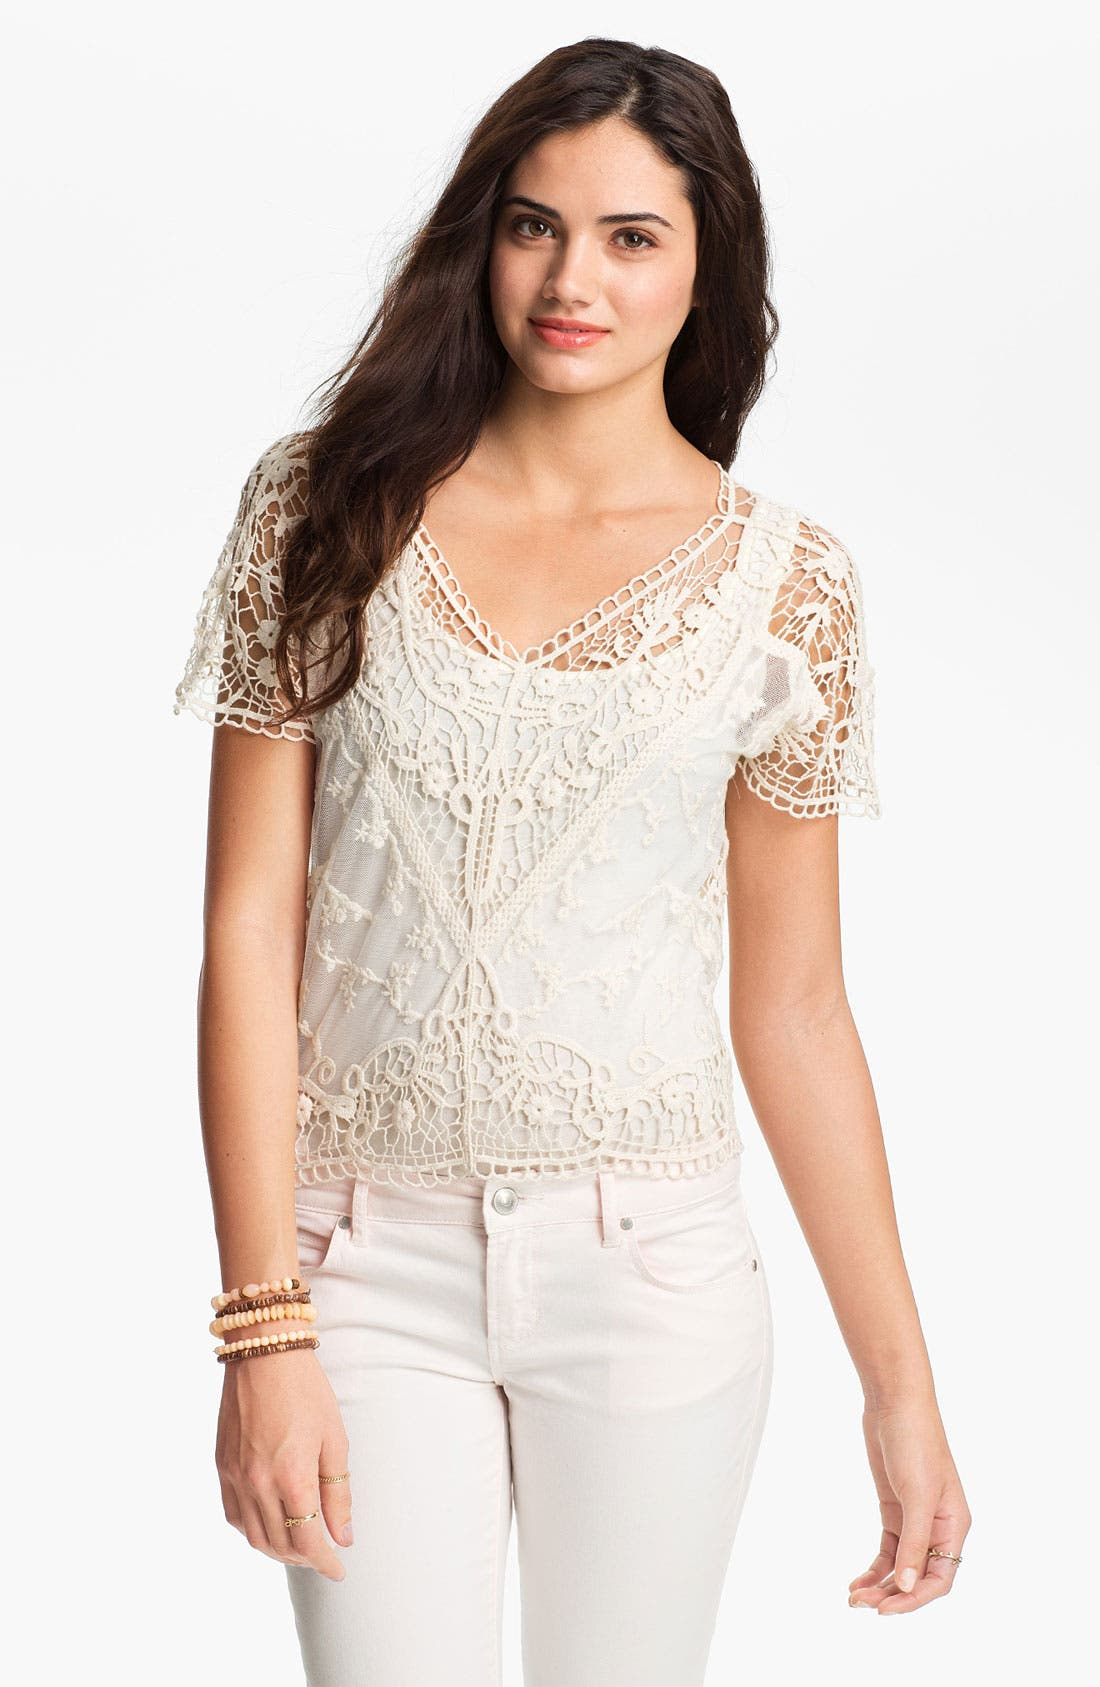 Alternate Image 1 Selected - Absolutely Cotton Crochet Lace Top (Juniors)